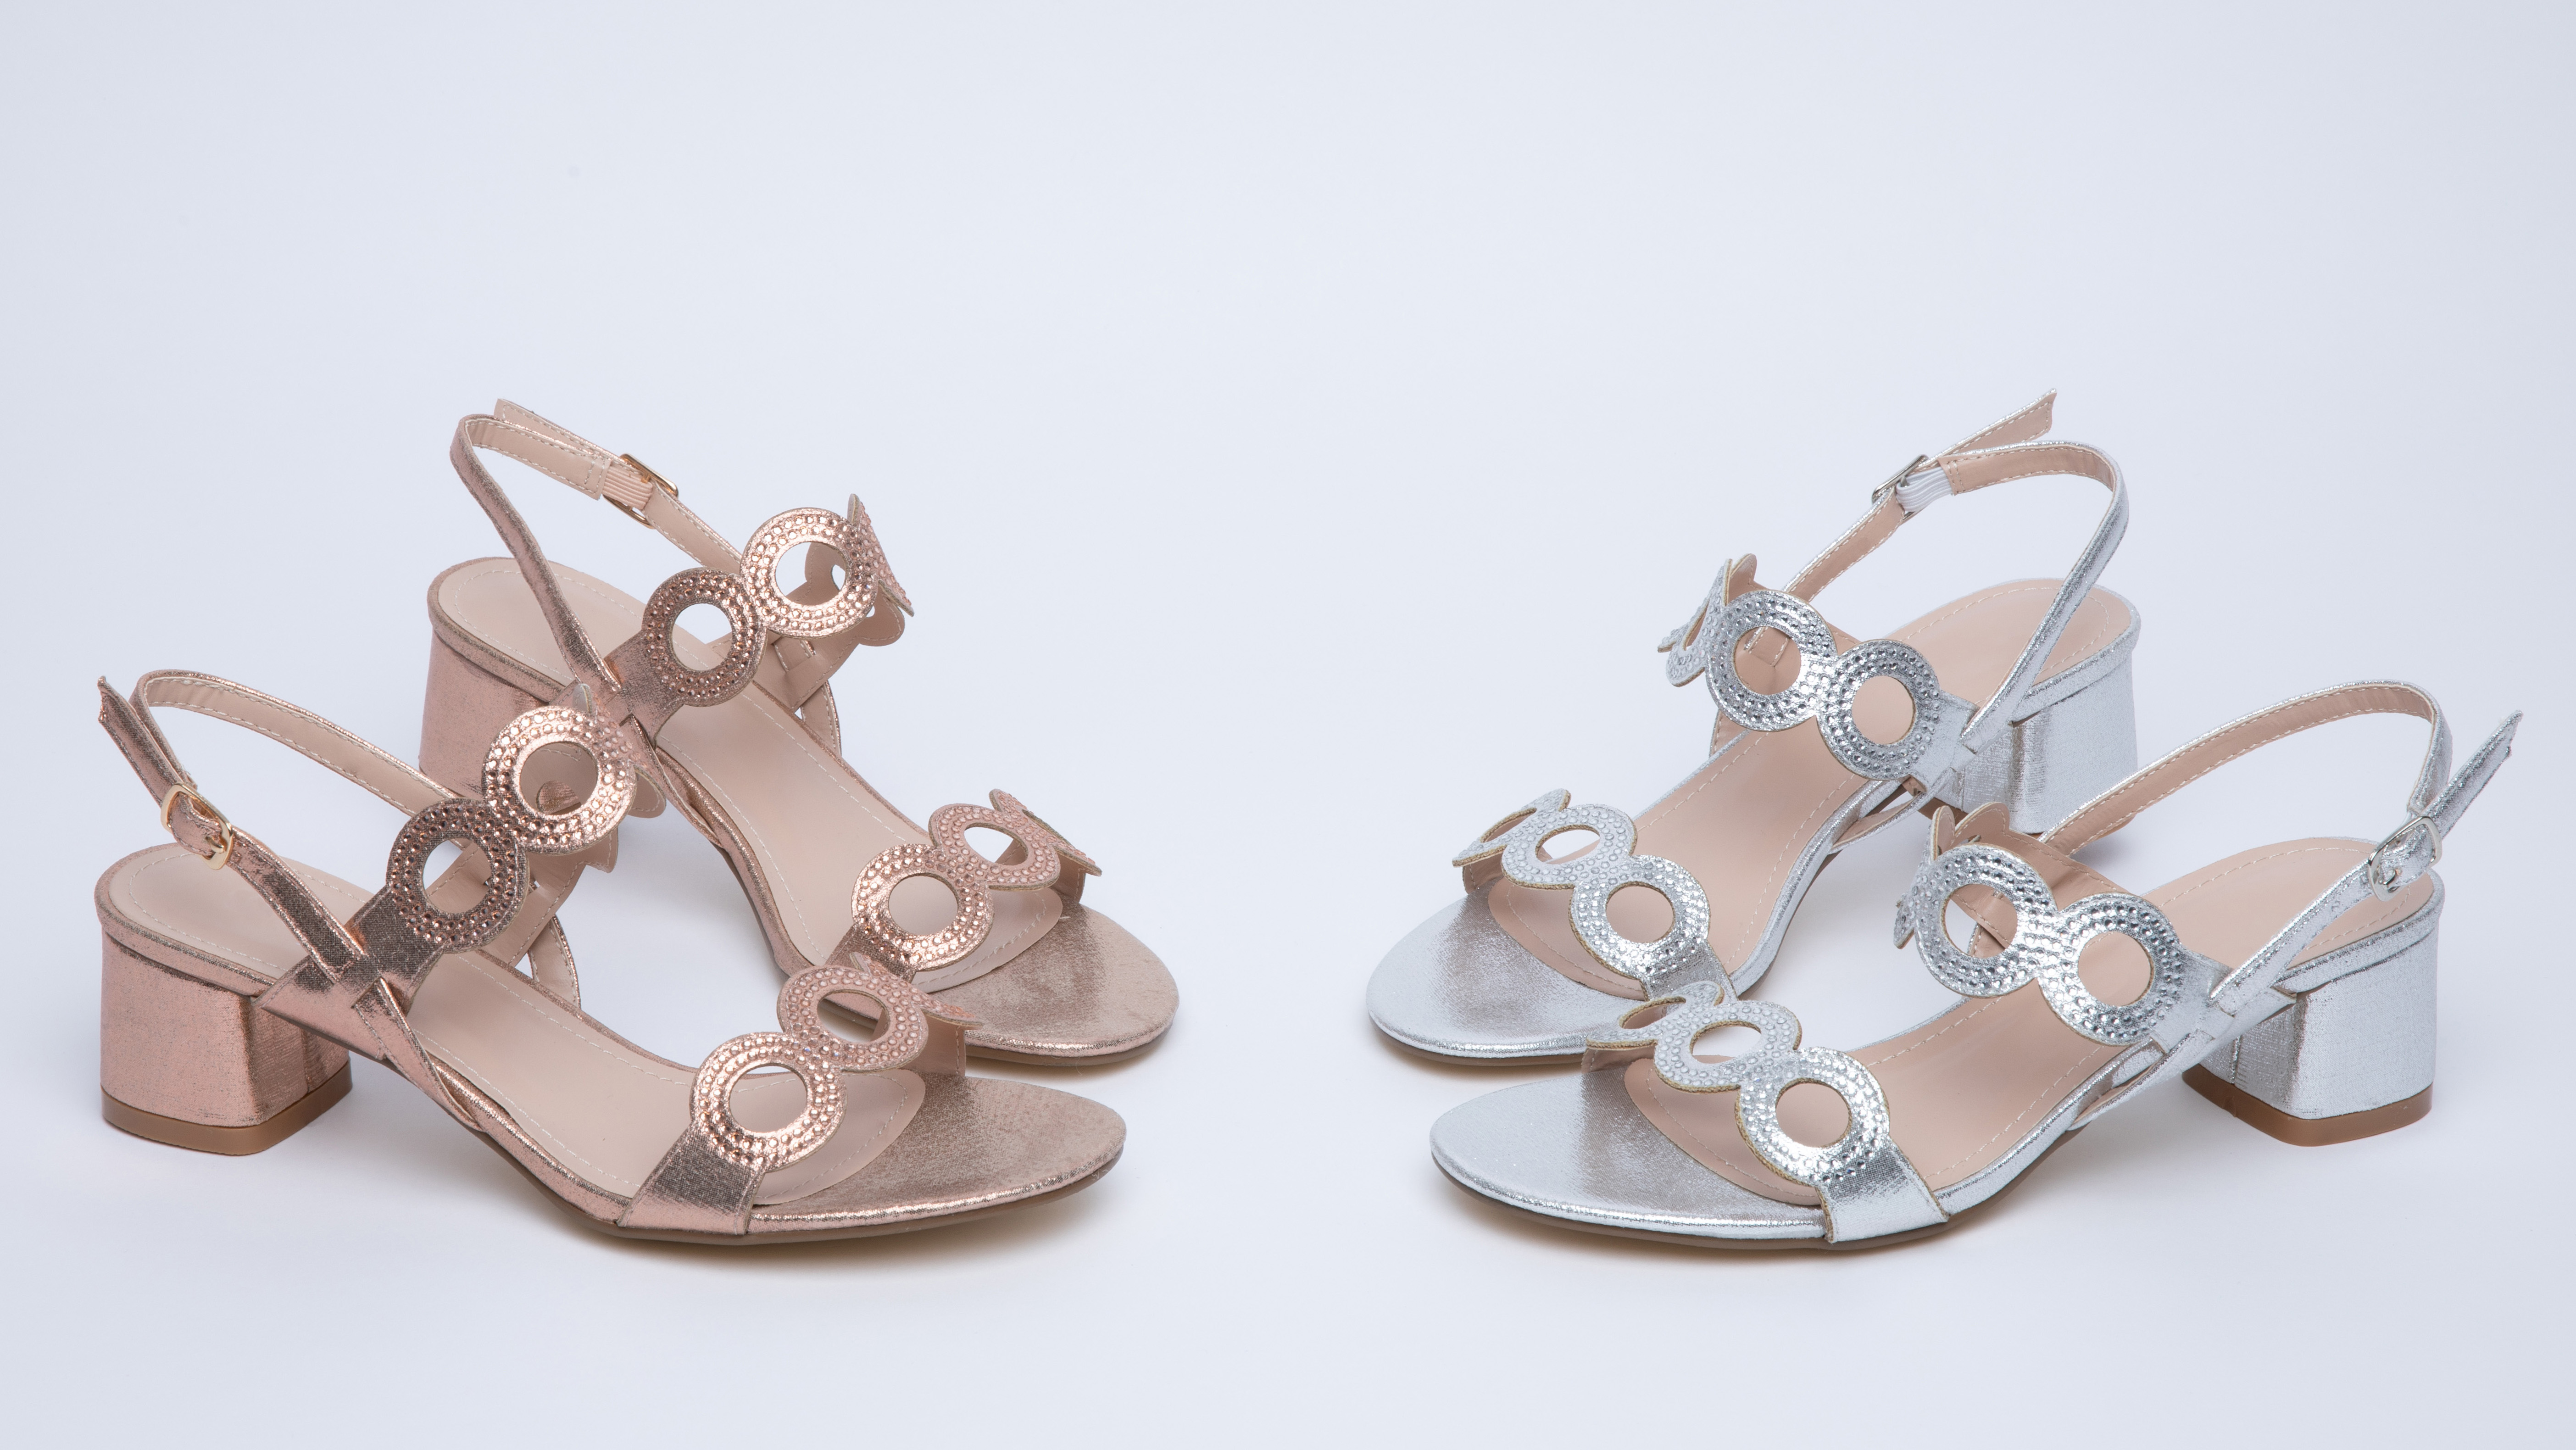 Bridesmaid Shoes: Heels and Flats for